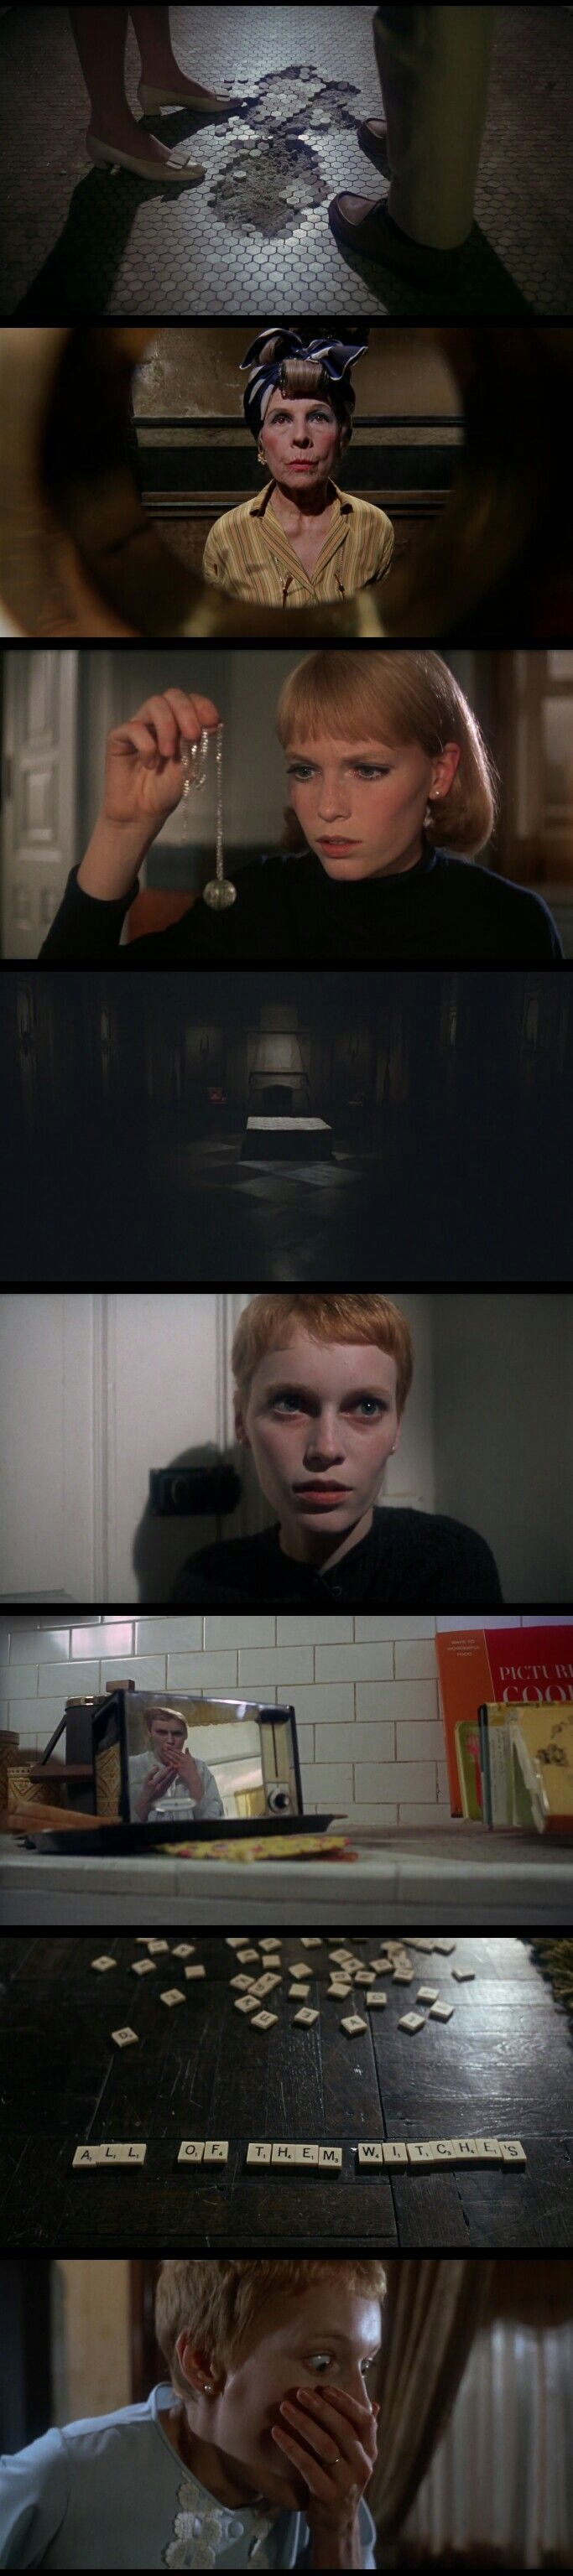 Rosemary's Baby (1968) great for fans of realistic horror films while still being stylish and scary.